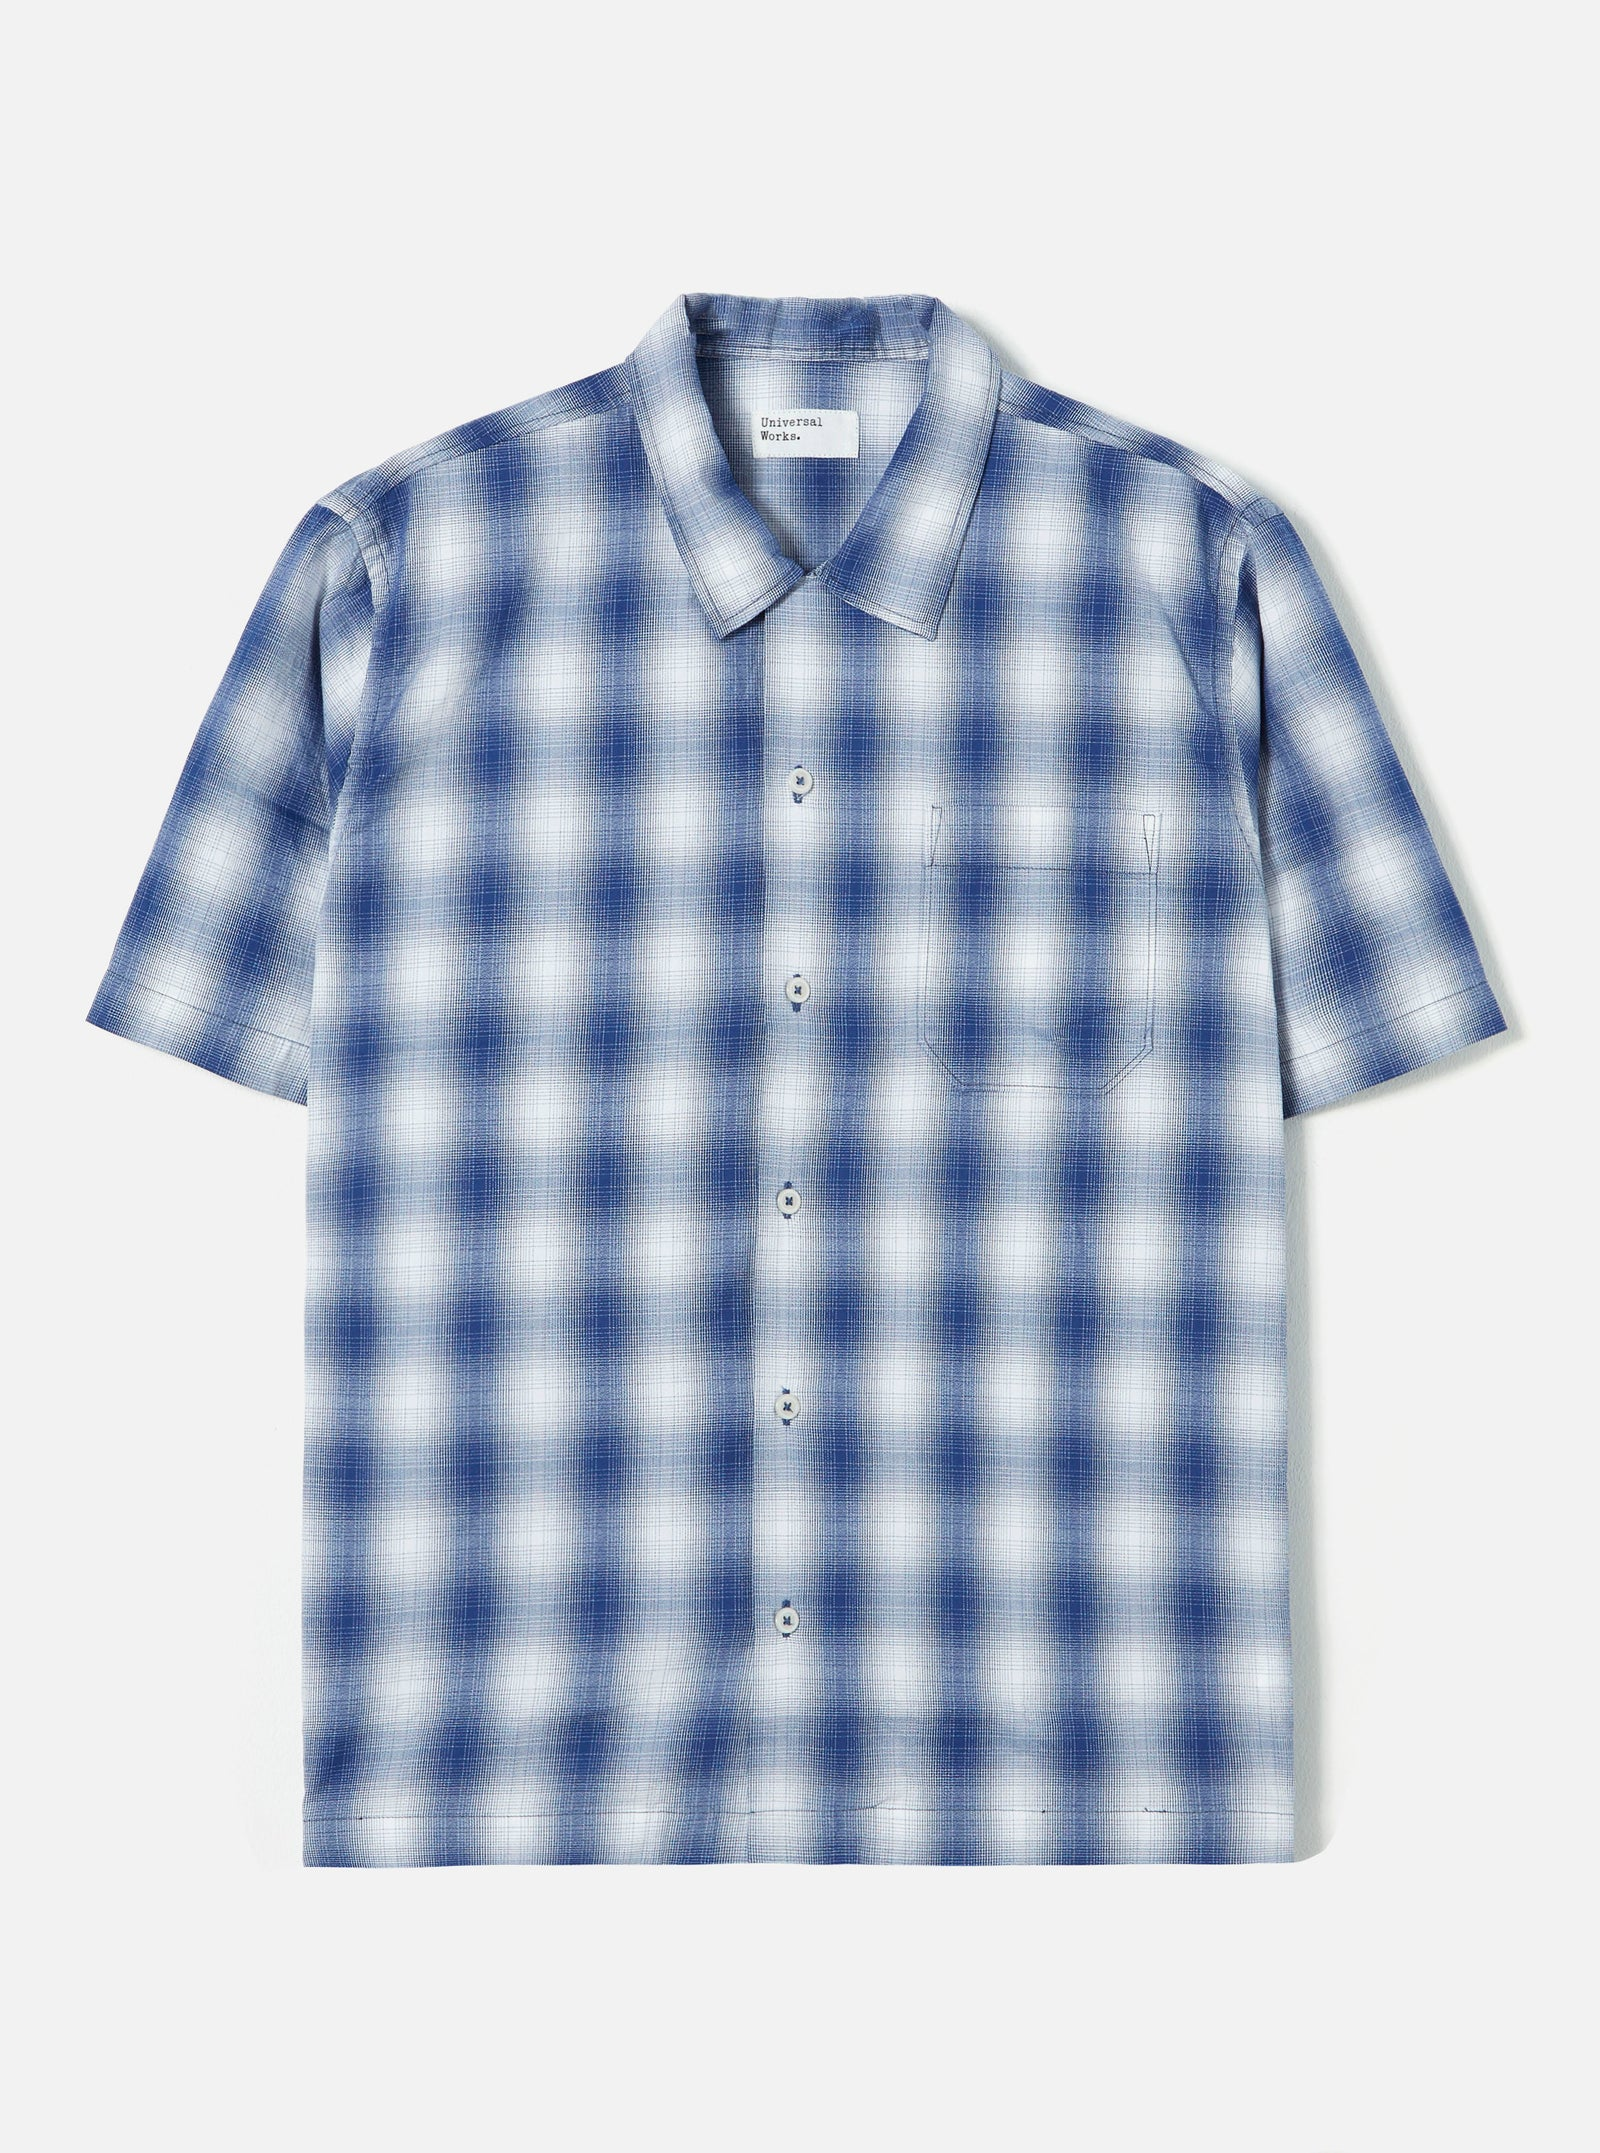 Universal Works Road Shirt in Navy Pepper Cotton